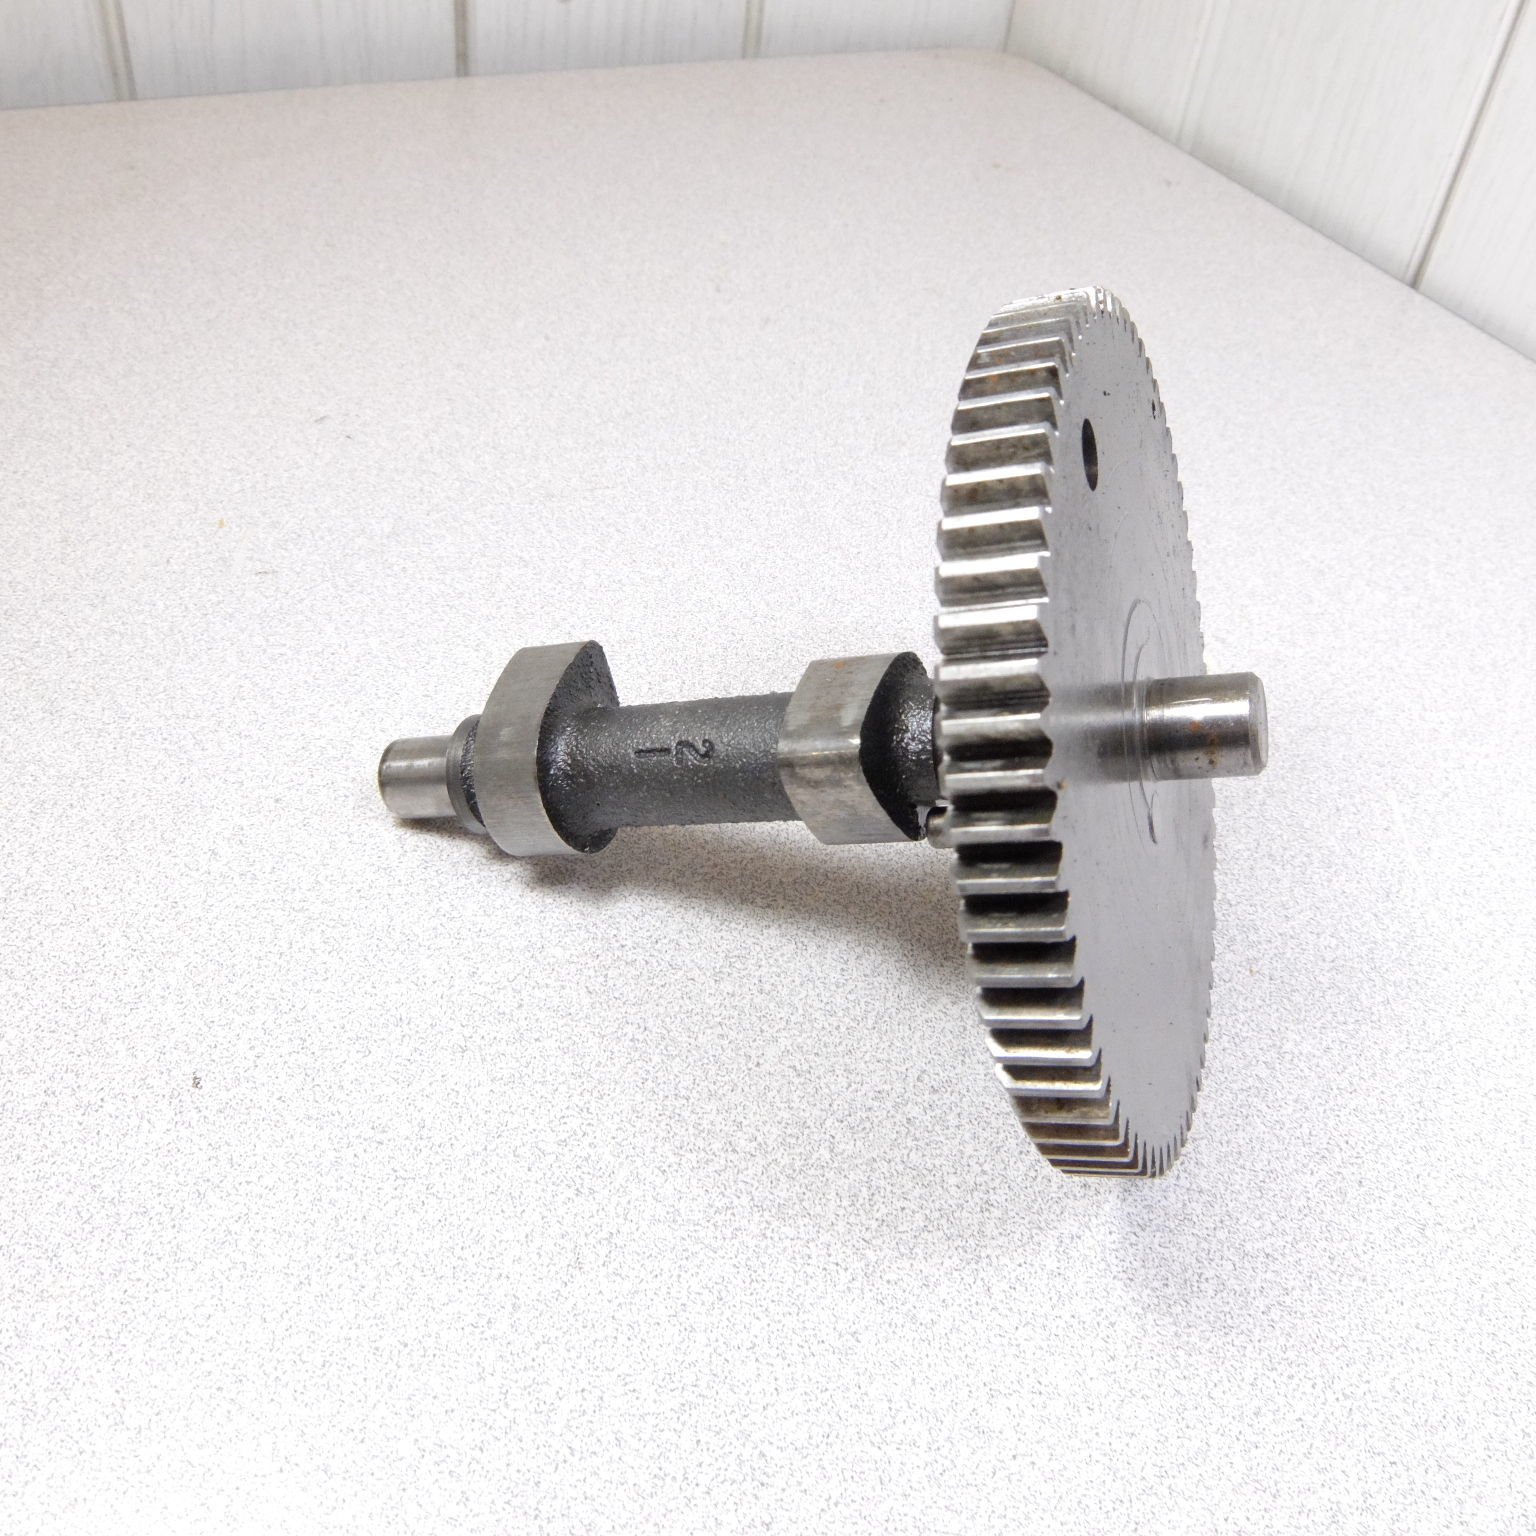 Used Briggs & Stratton Cam Shaft 692421 Fits and 50 similar items